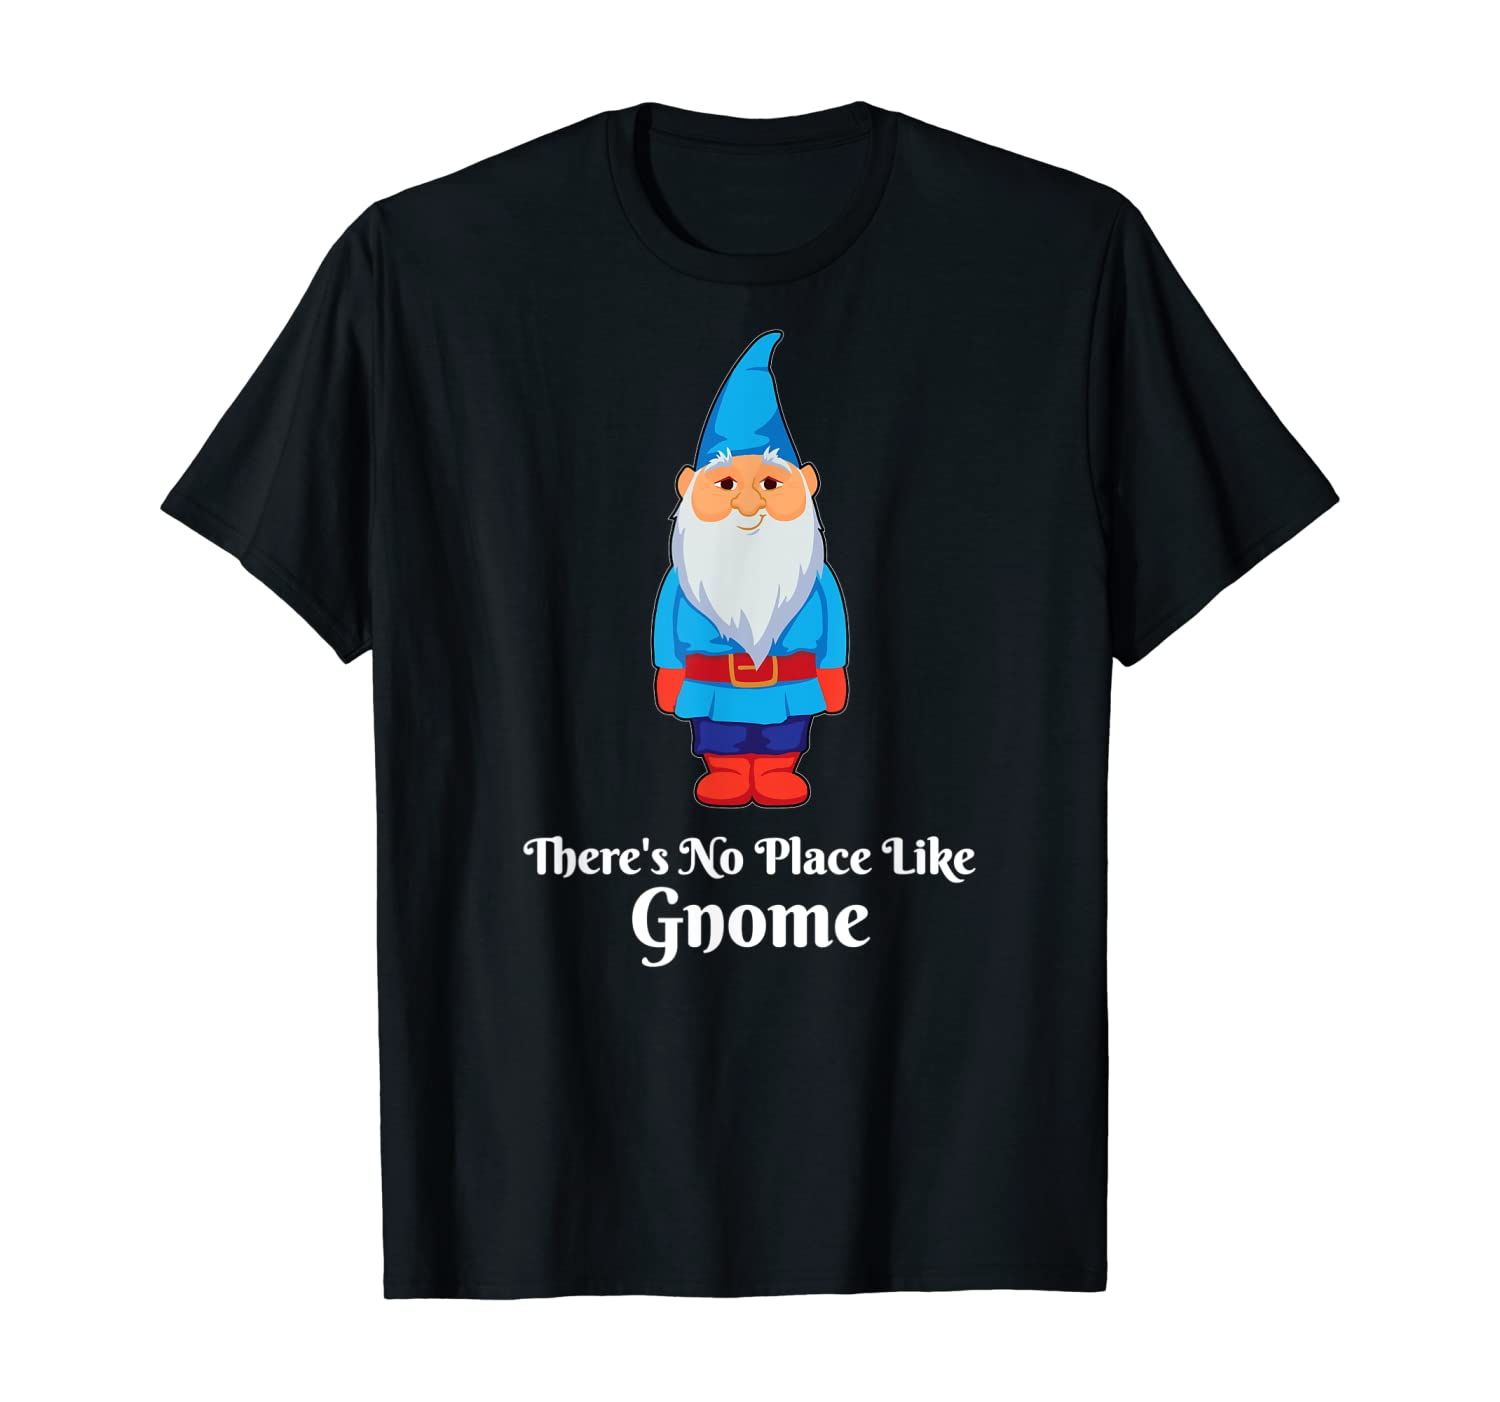 There Is No Place Like Gnome Funny Dwarf Inspired T-Shirt